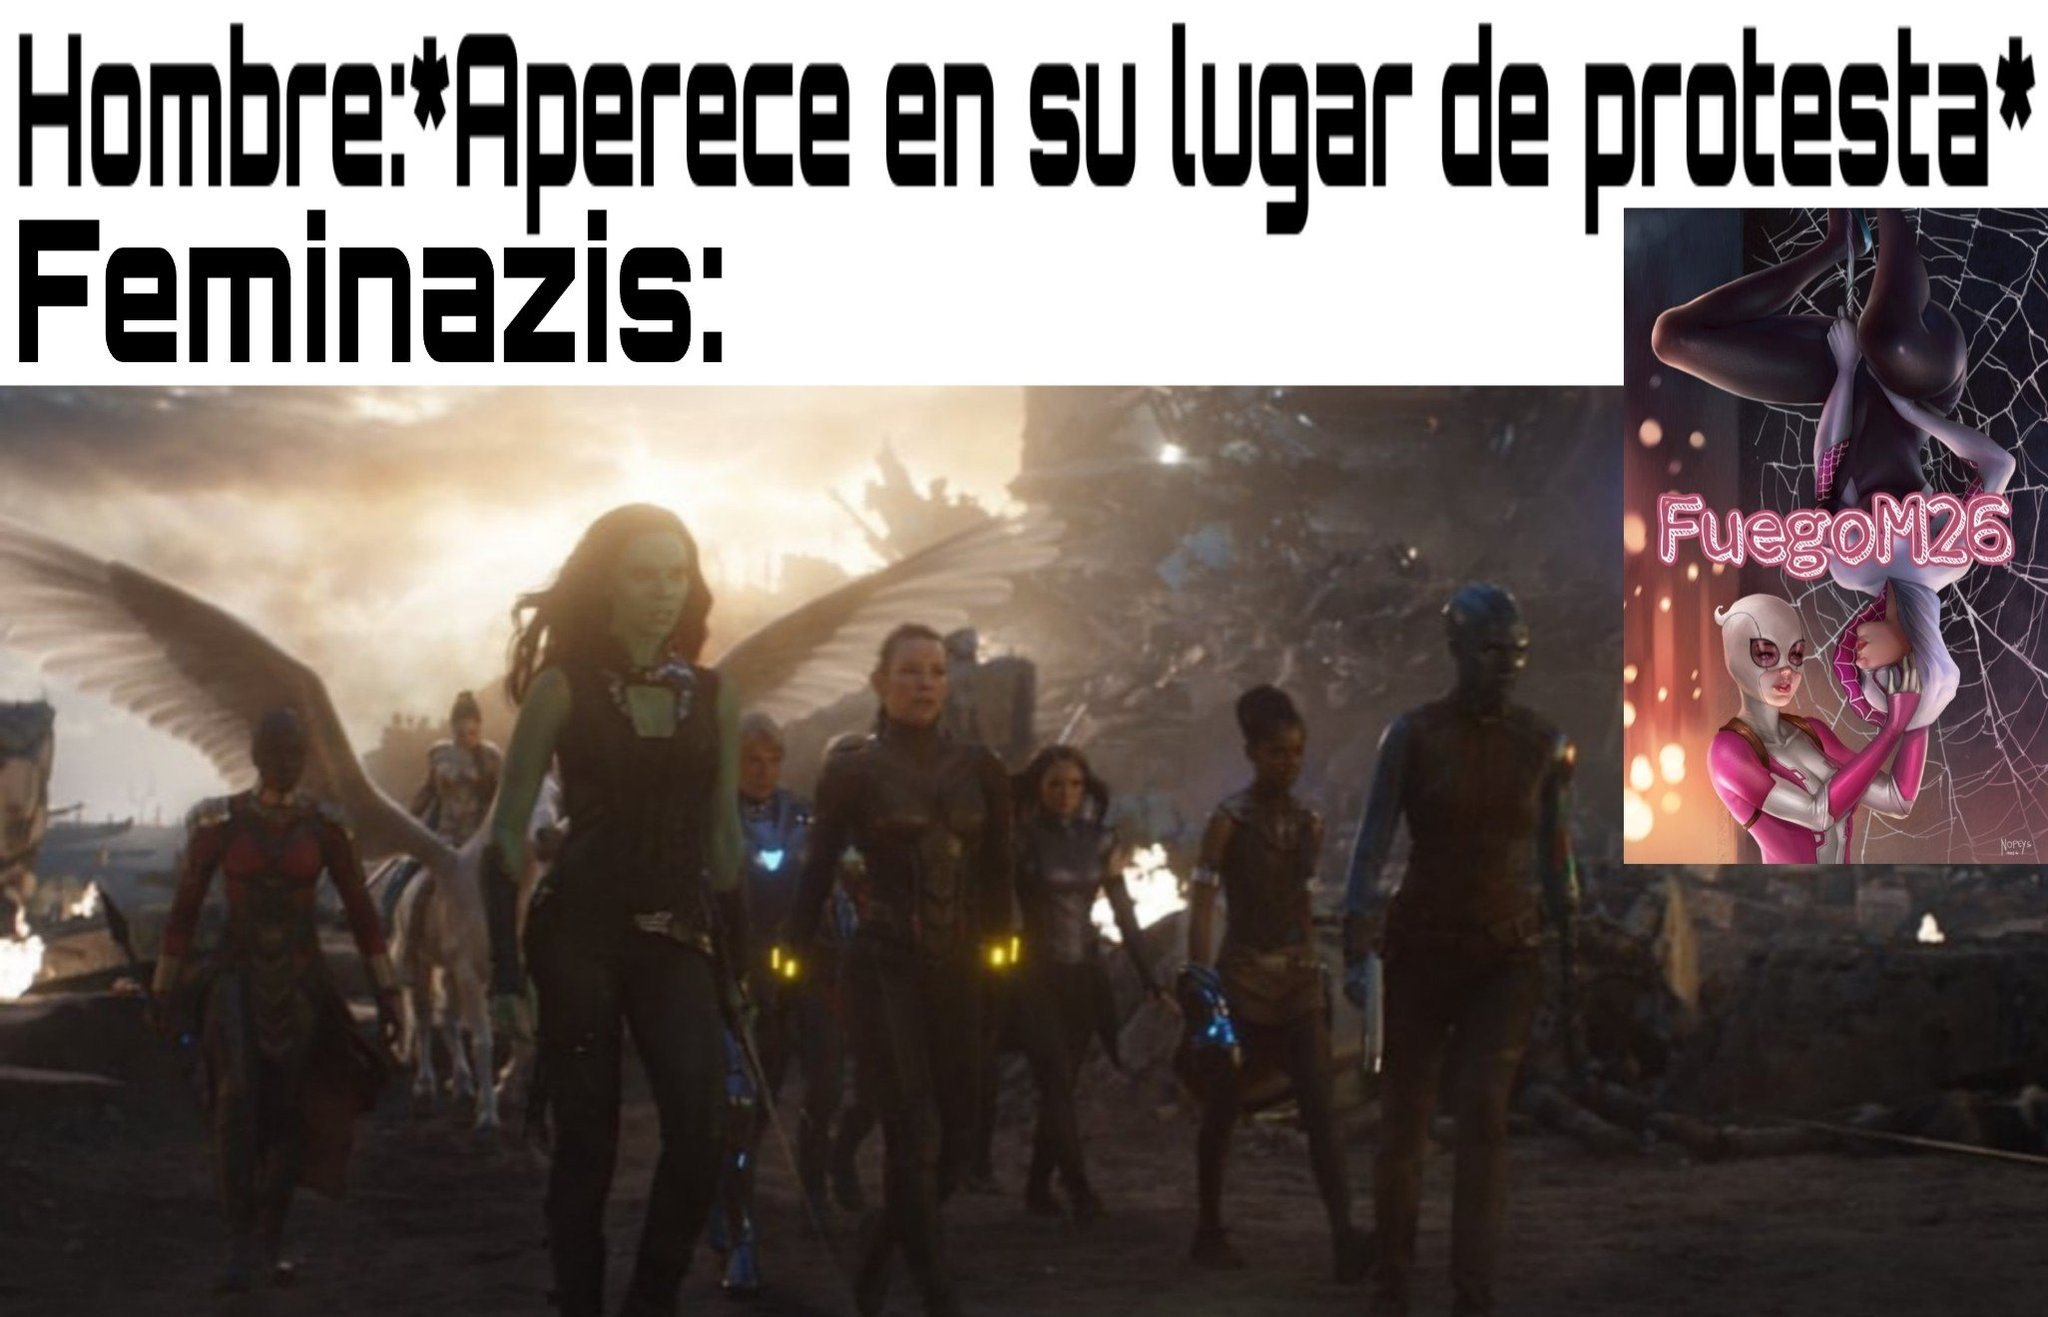 Todas las plantillas de End Game en HD(? - meme